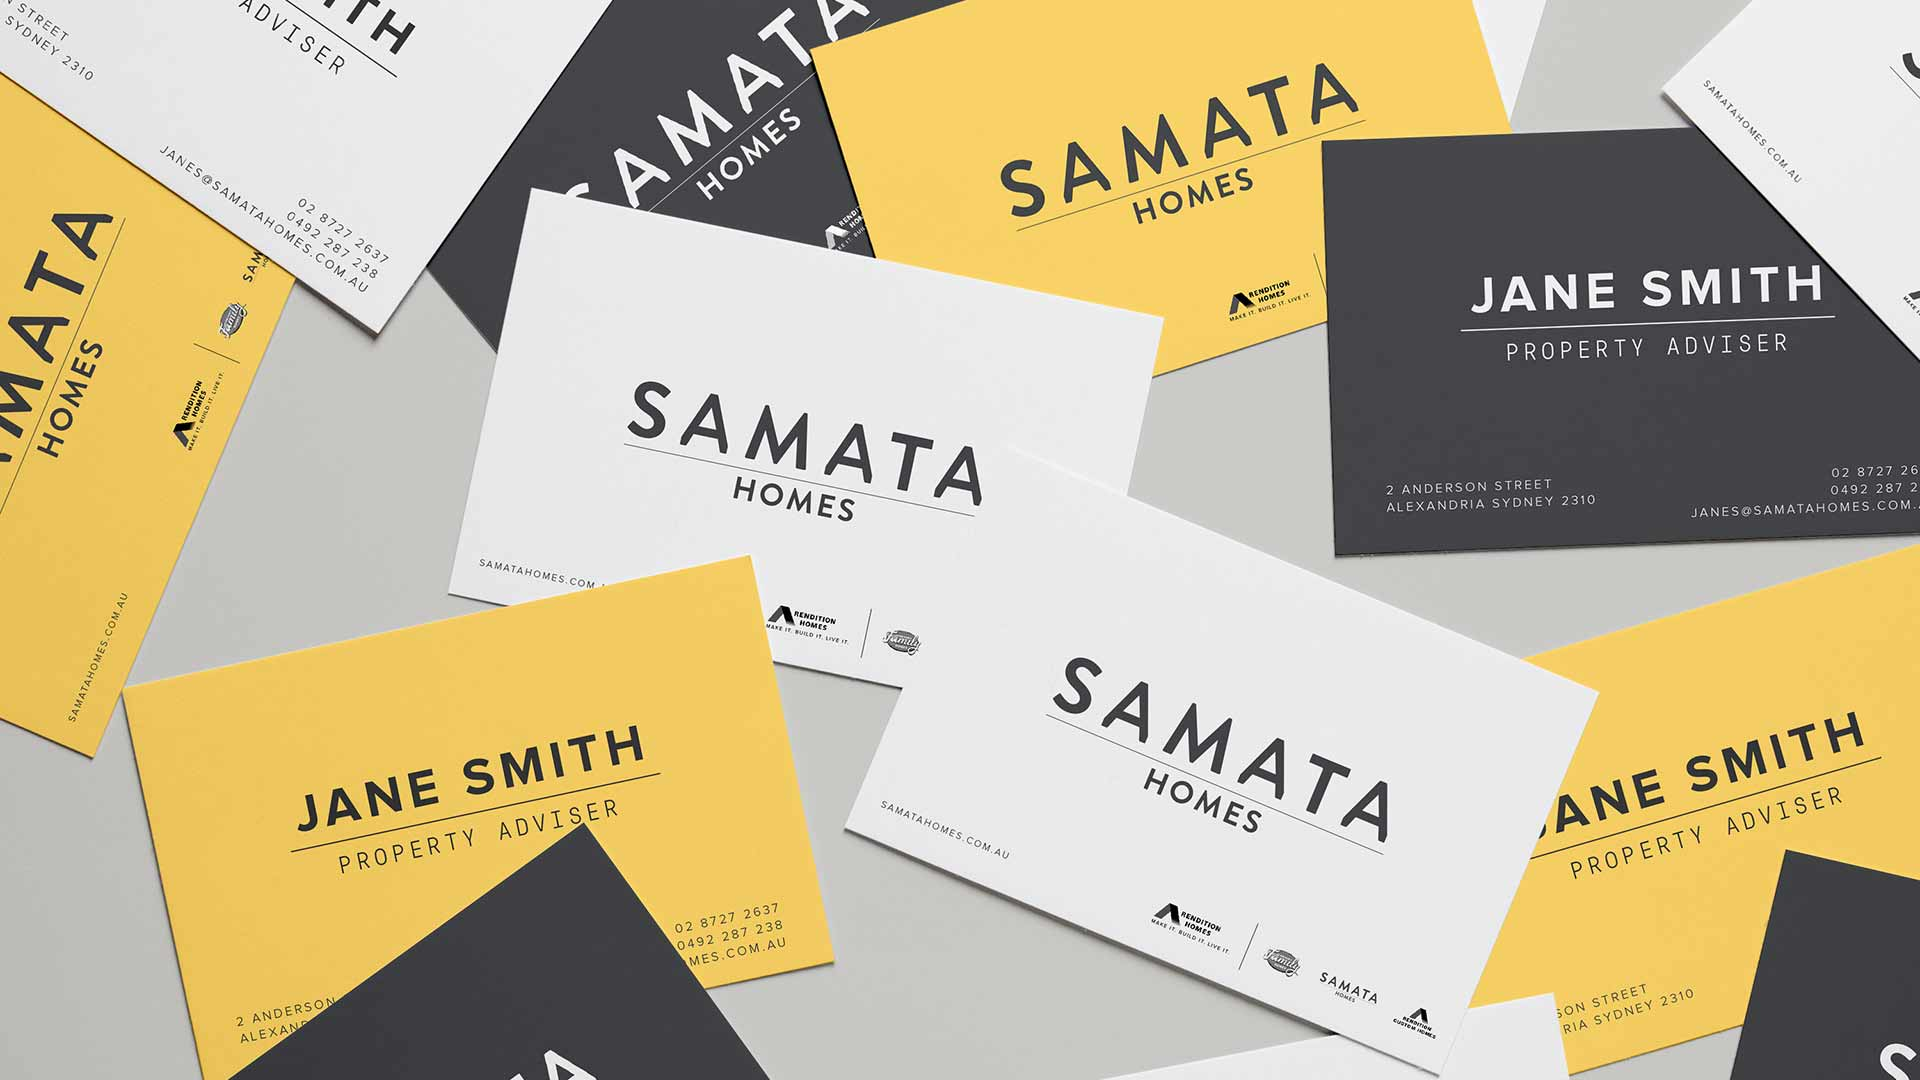 SAMATA_1920x1080px_Website_Folio_03